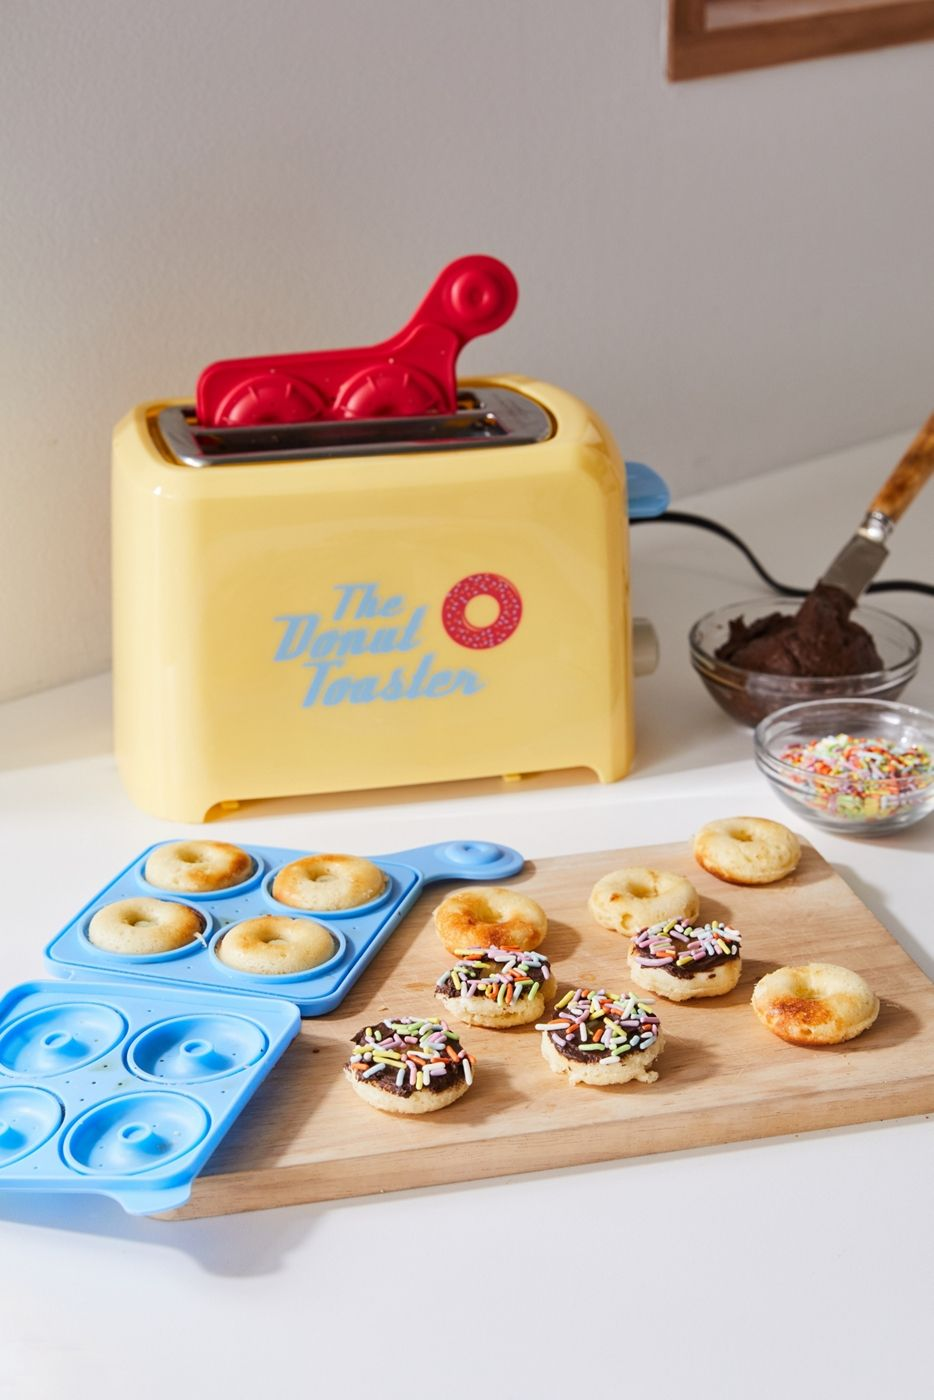 You Can Now Buy a Toaster That Makes Mini Donuts Instead of Toast